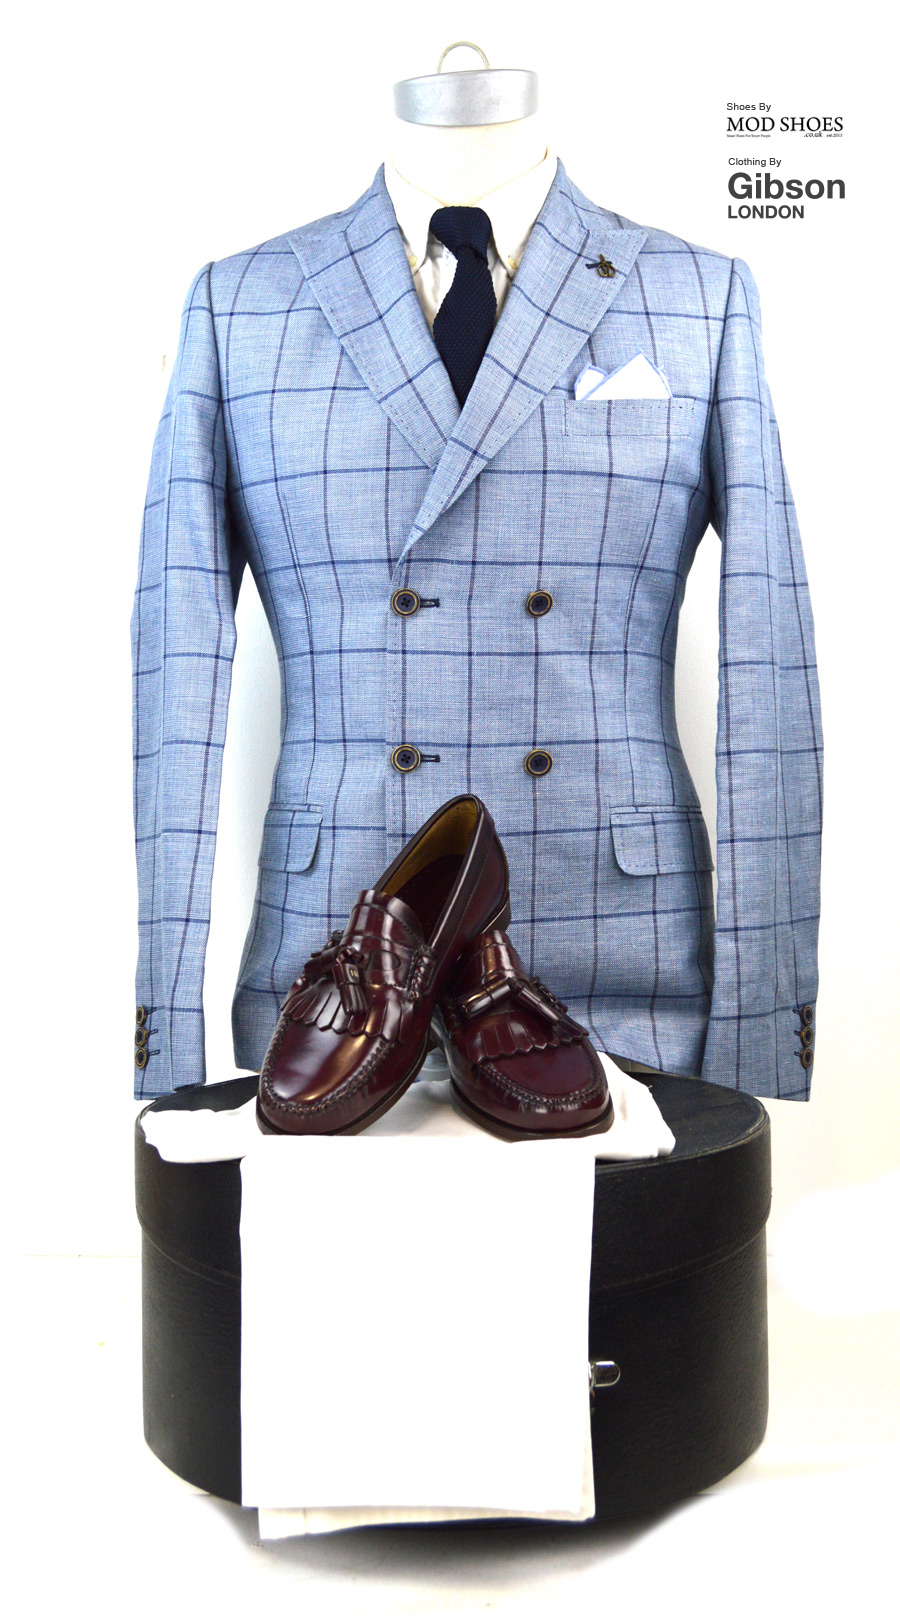 modshoes-oxblood-dukes-with-light-blue-jacket-from-gibson-clothing